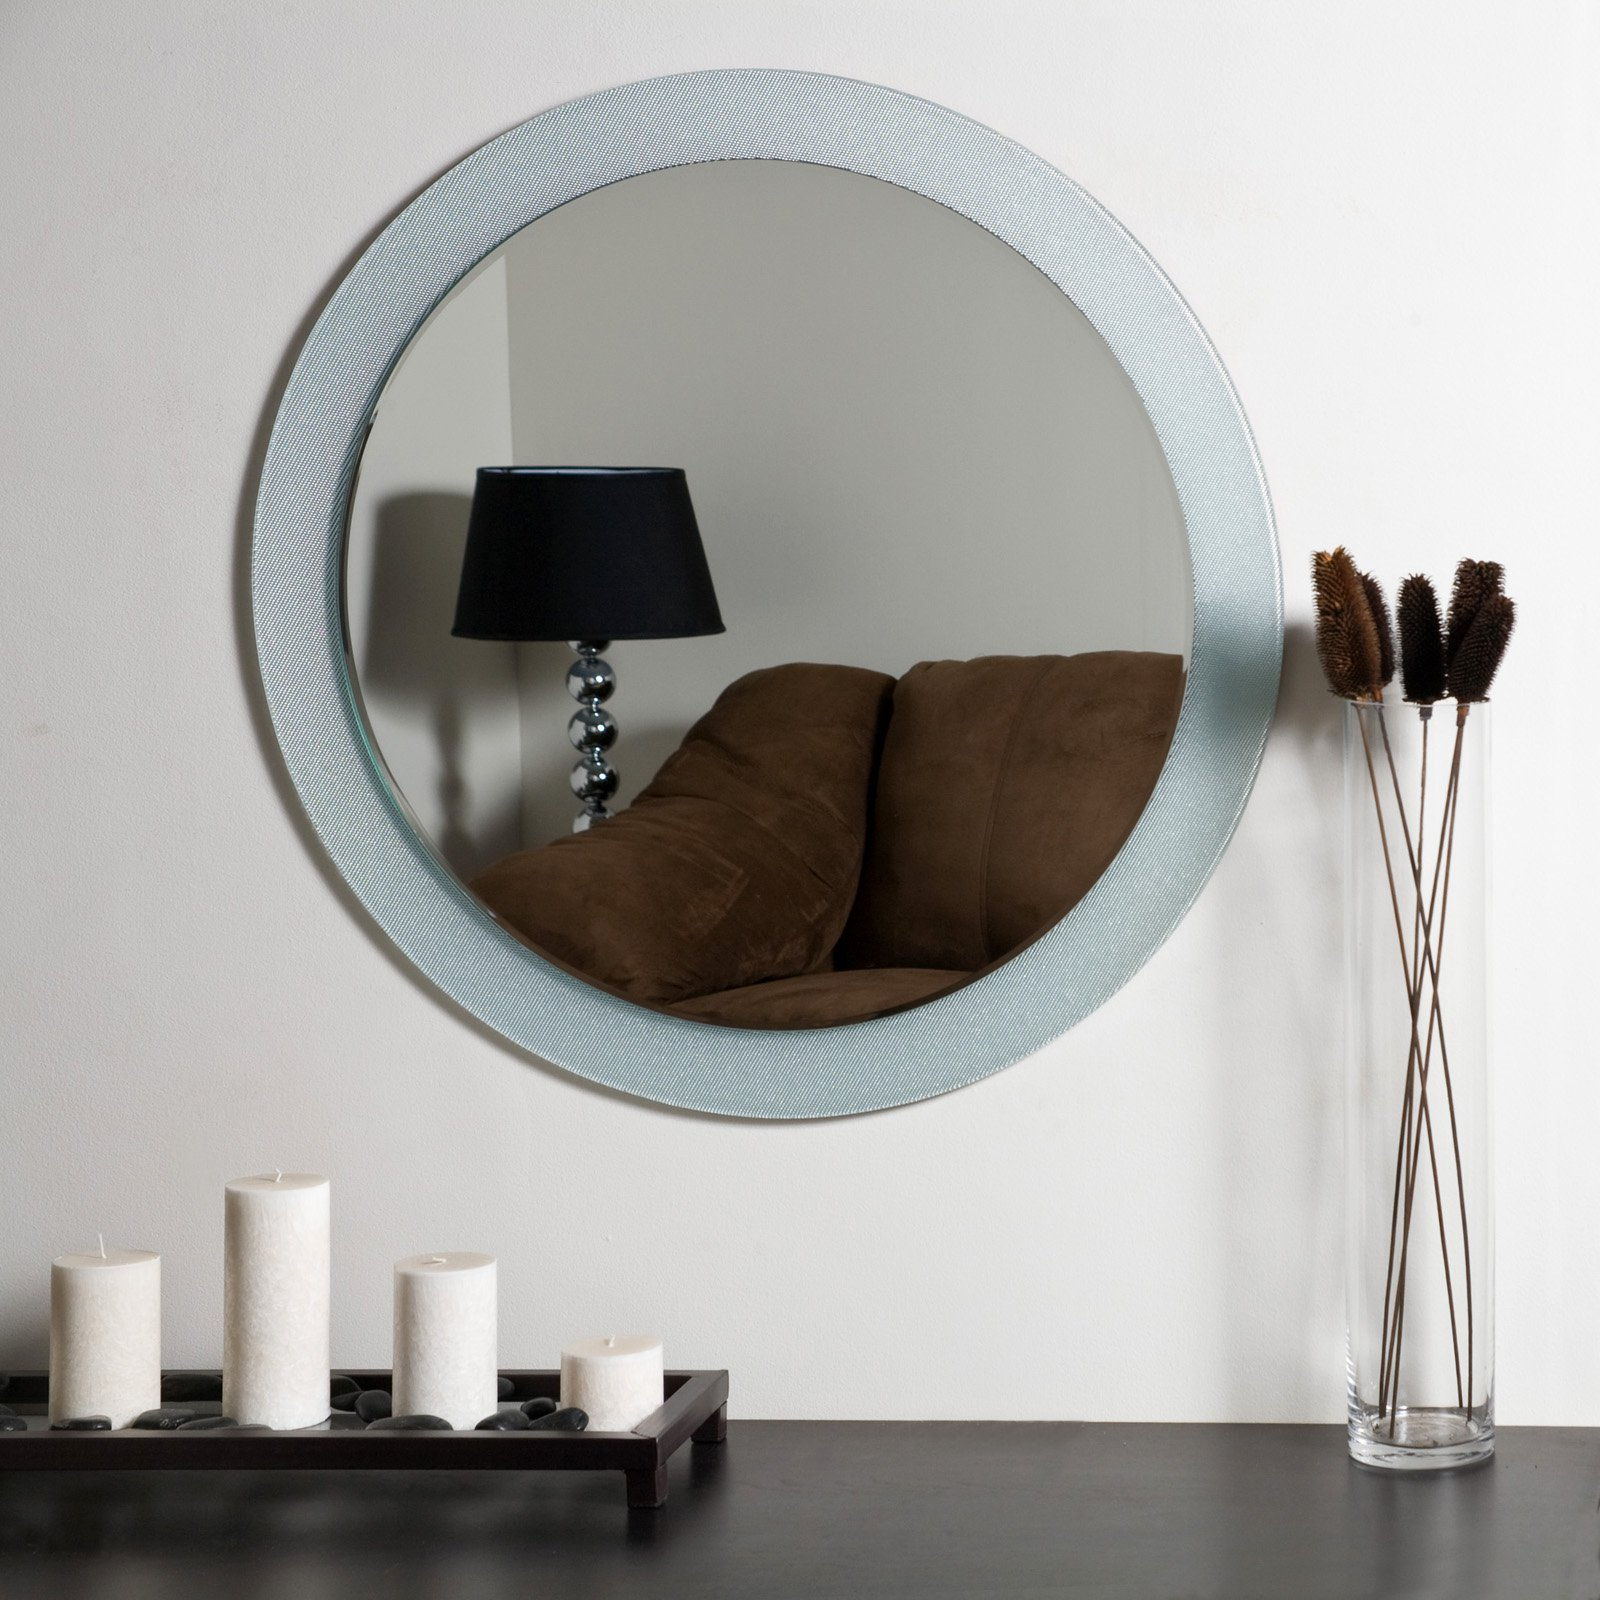 Décor Wonderland Zoe Modern Frameless Bathroom Mirror 27.6 diam. in. by Decor Wonderland of US